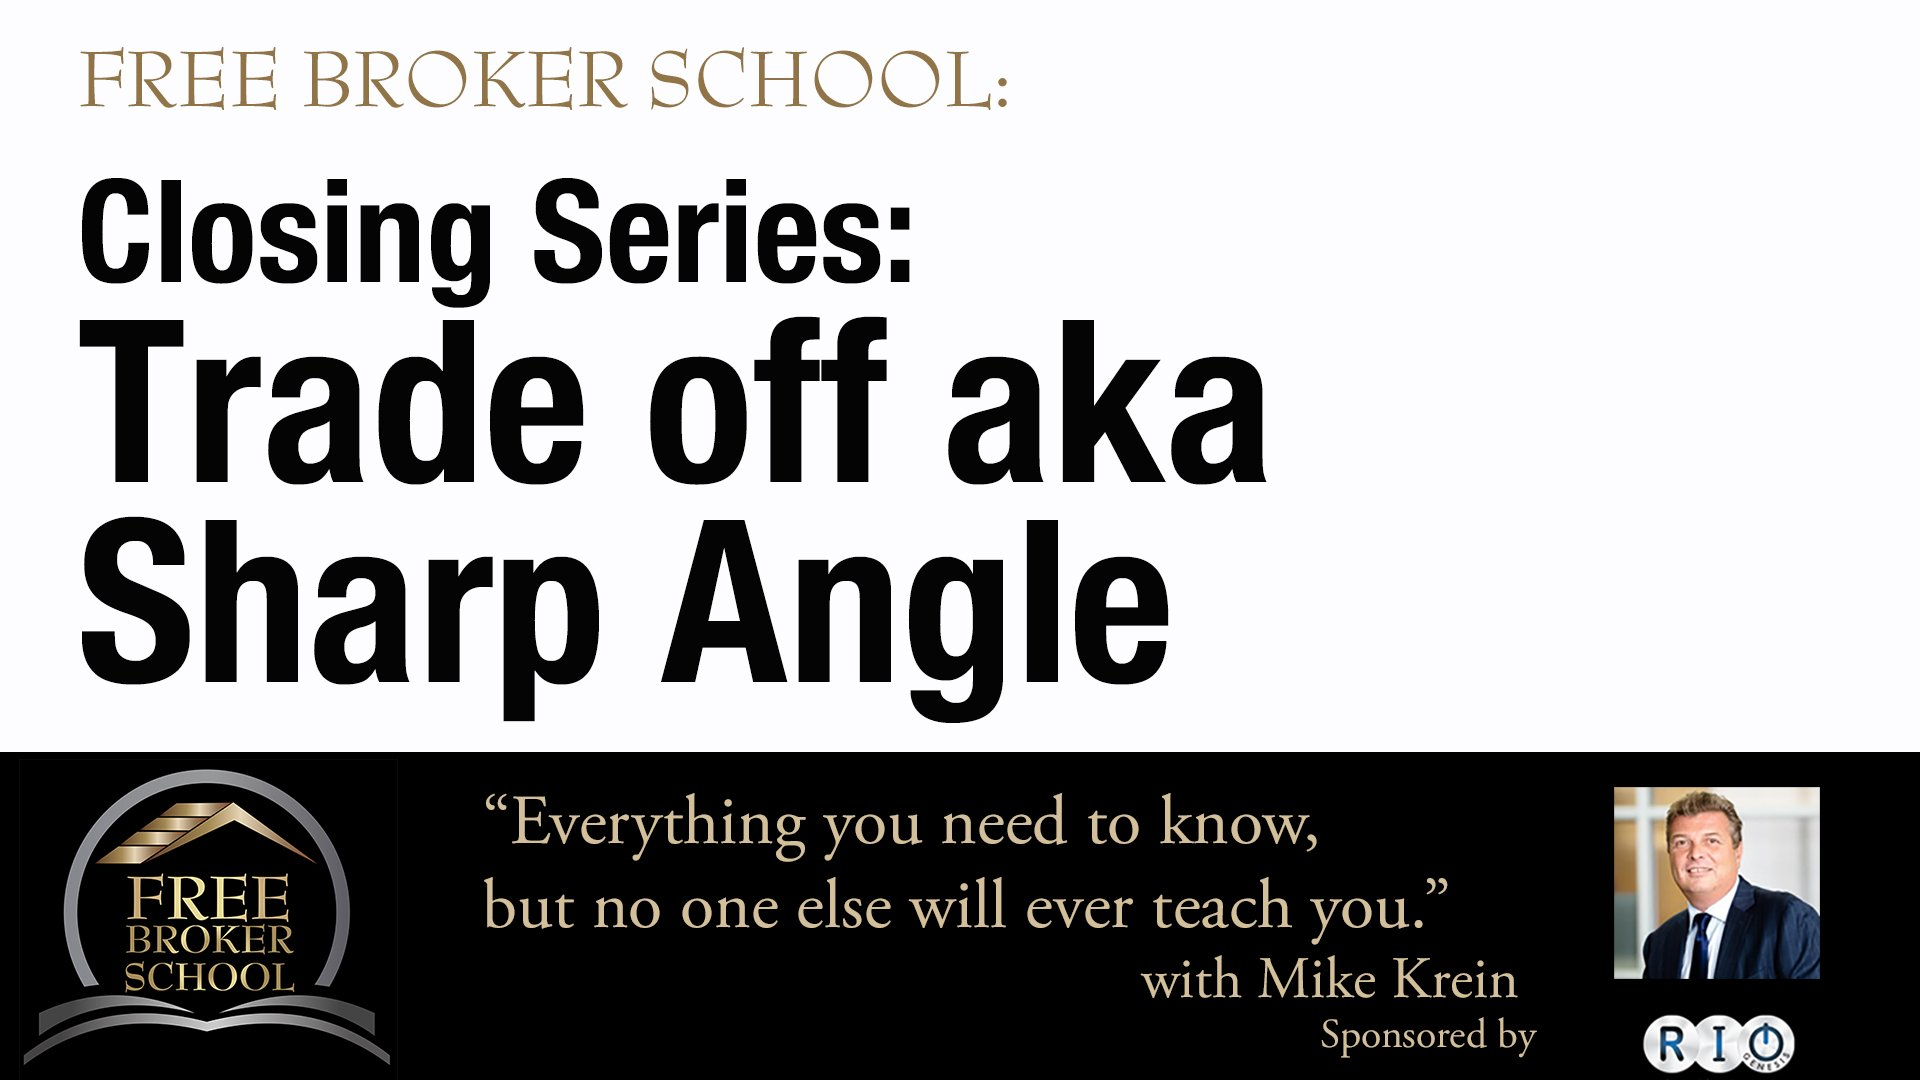 Free Broker School: Closing Series: Trade off aka Sharp Angle